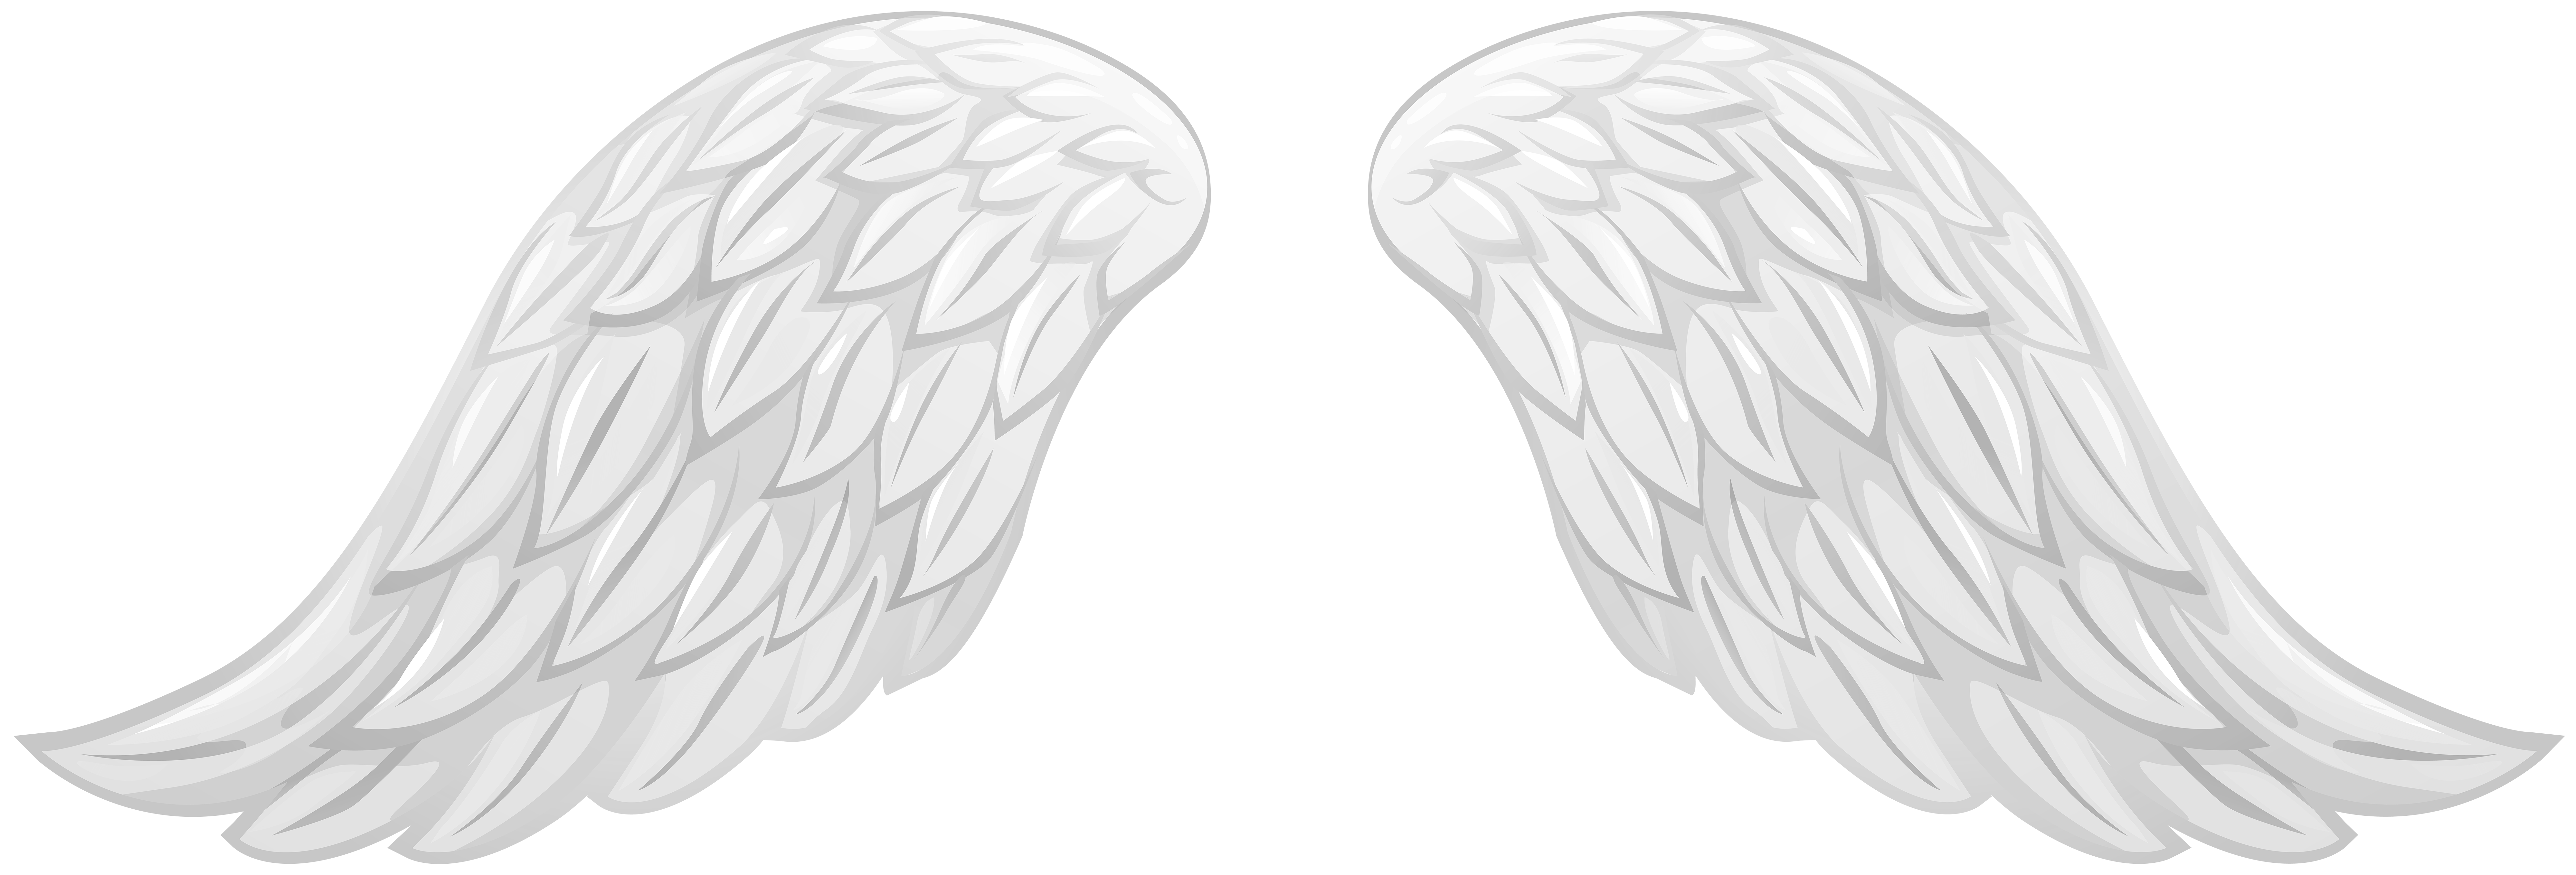 White Wings Transparent Clip Art PNG Image.